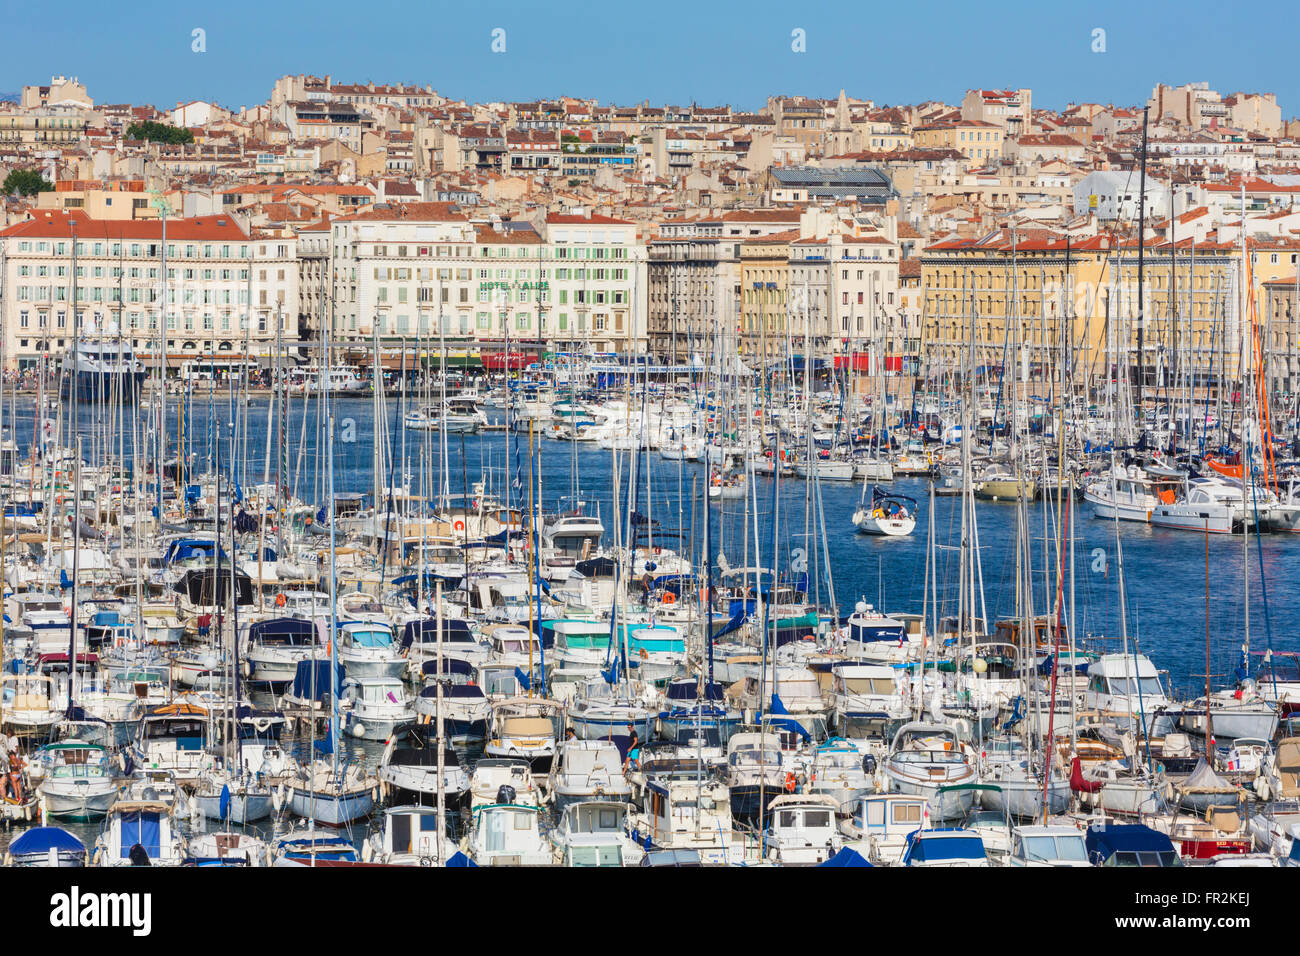 Marseille, Provence-Alpes-Côte d'Azur, France.  High view down onto Vieux-Port, the Old Port, and the city. - Stock Image